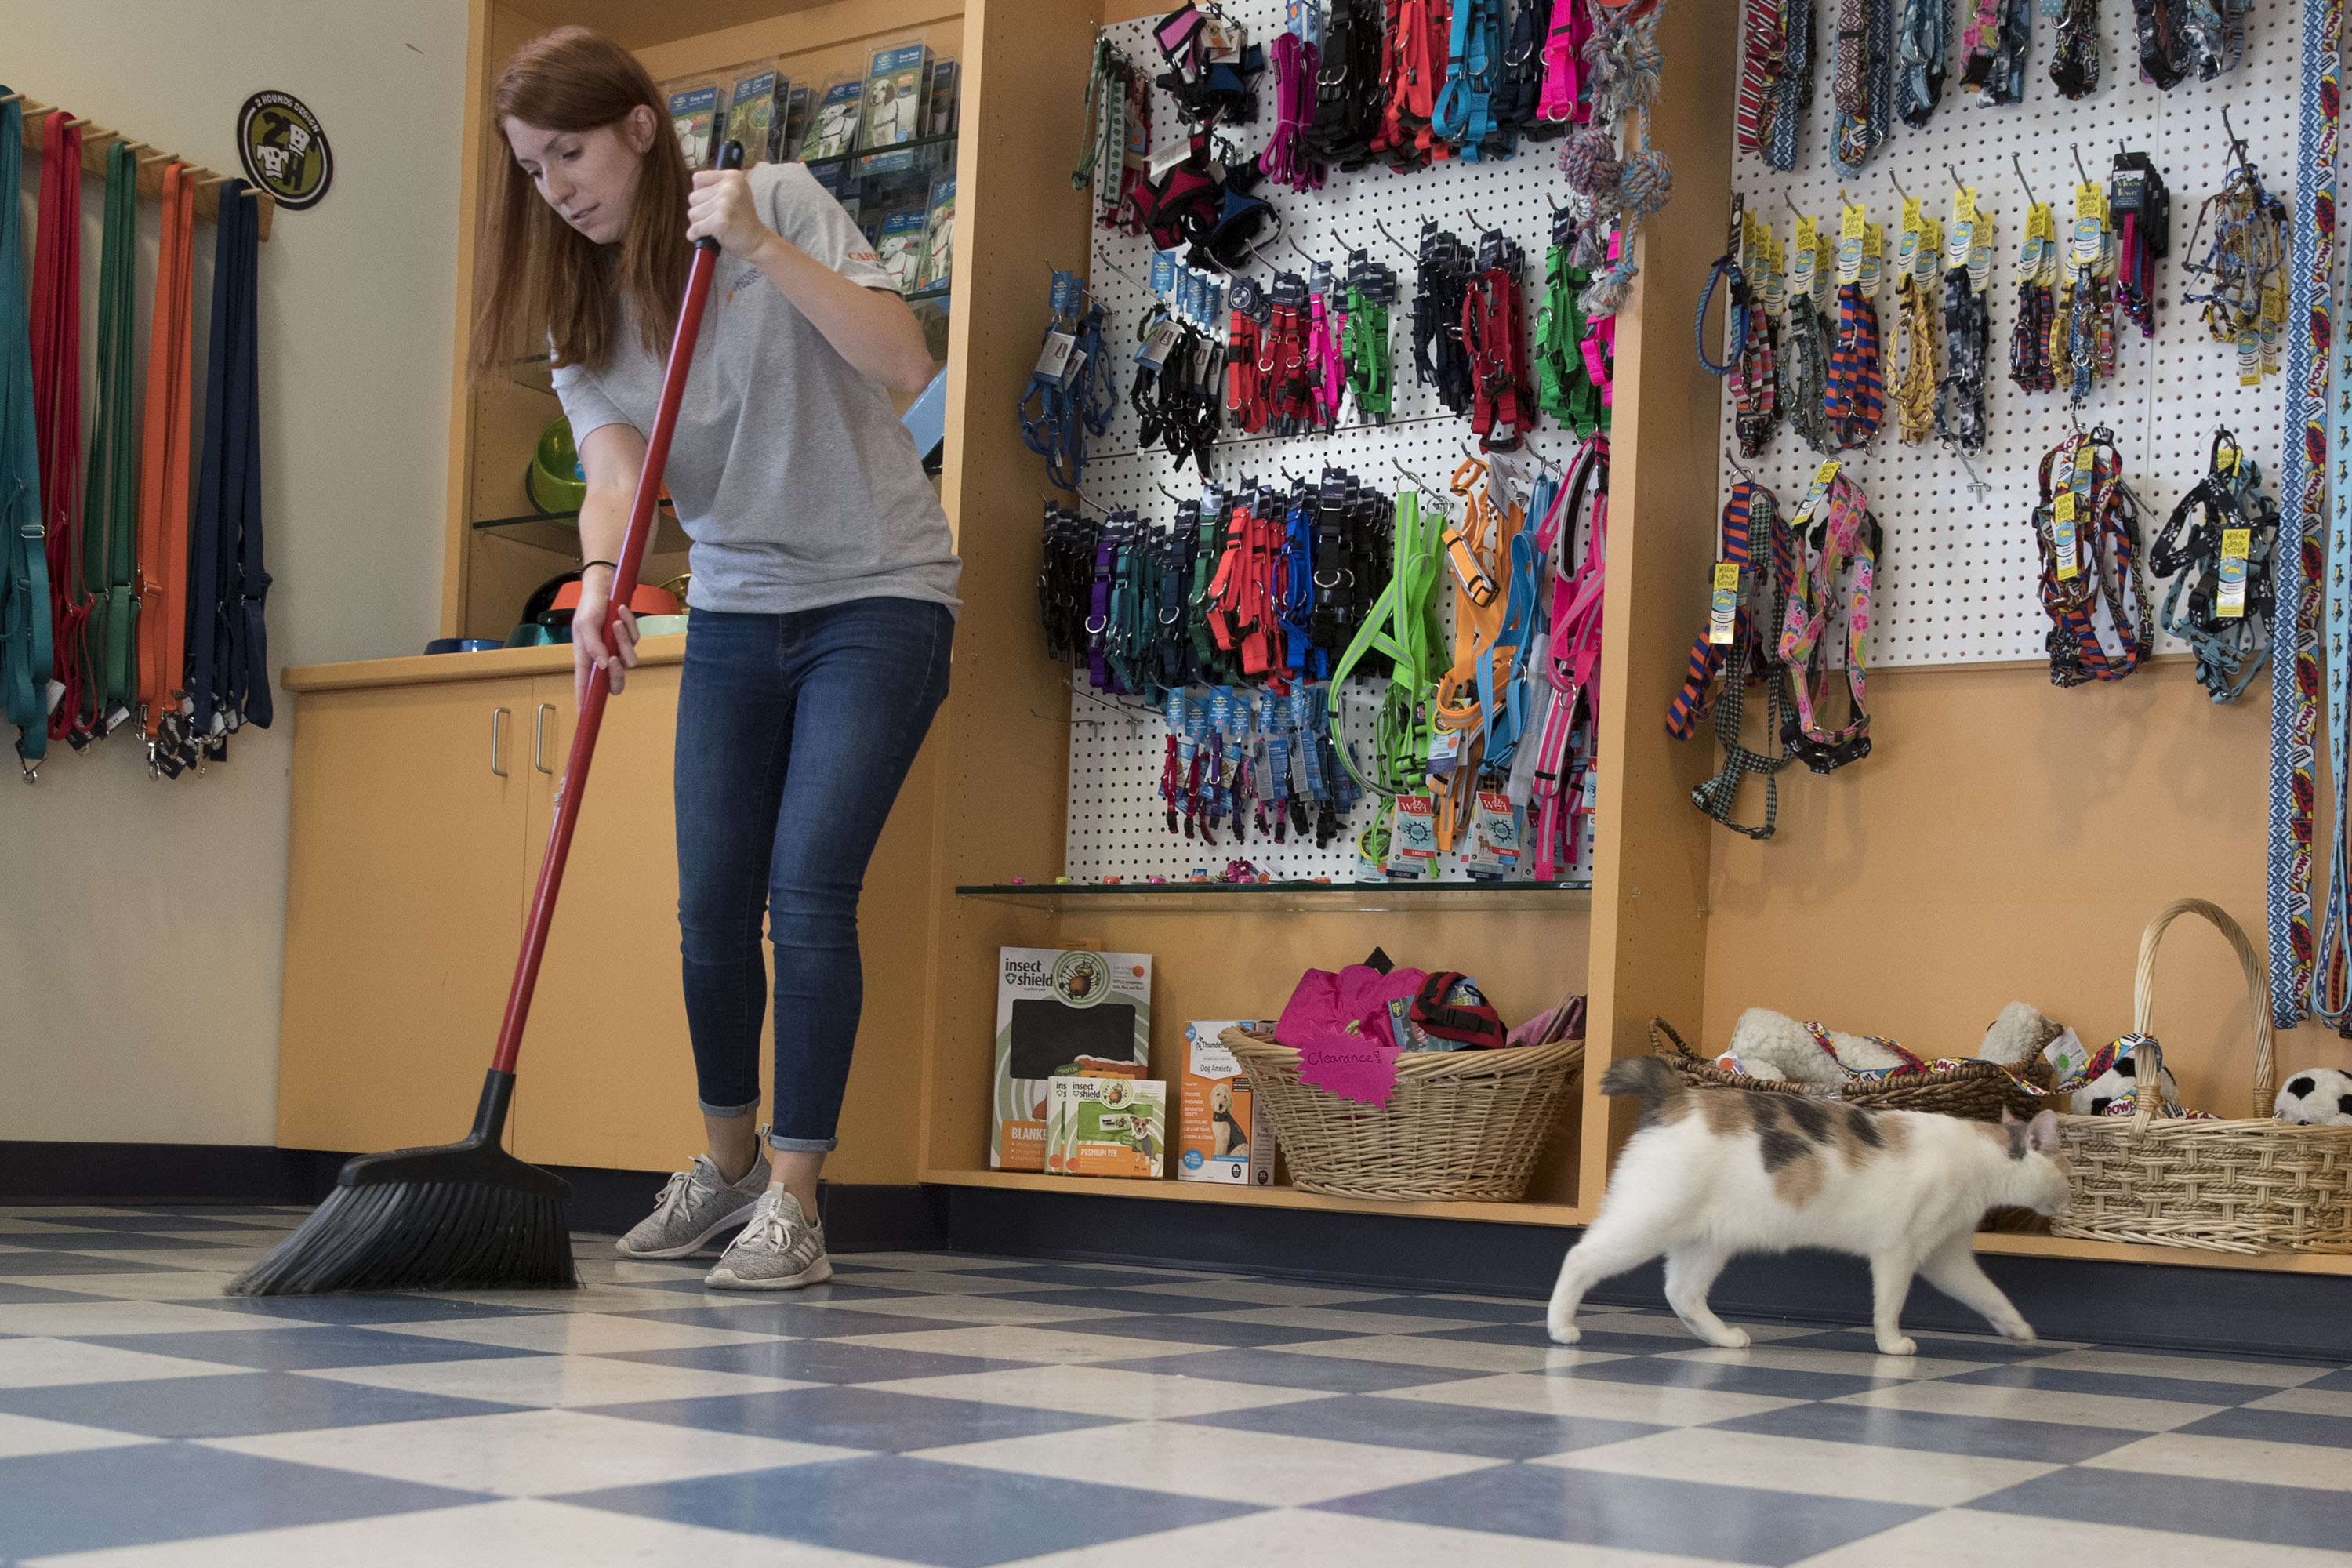 Mary Andrews, program operations and special projects manager at the Darden School of Business, helped out at the Charlottesville-Albemarle SPCA, and the cats seemed pleased. (Photos by Dan Addison, University Communications)